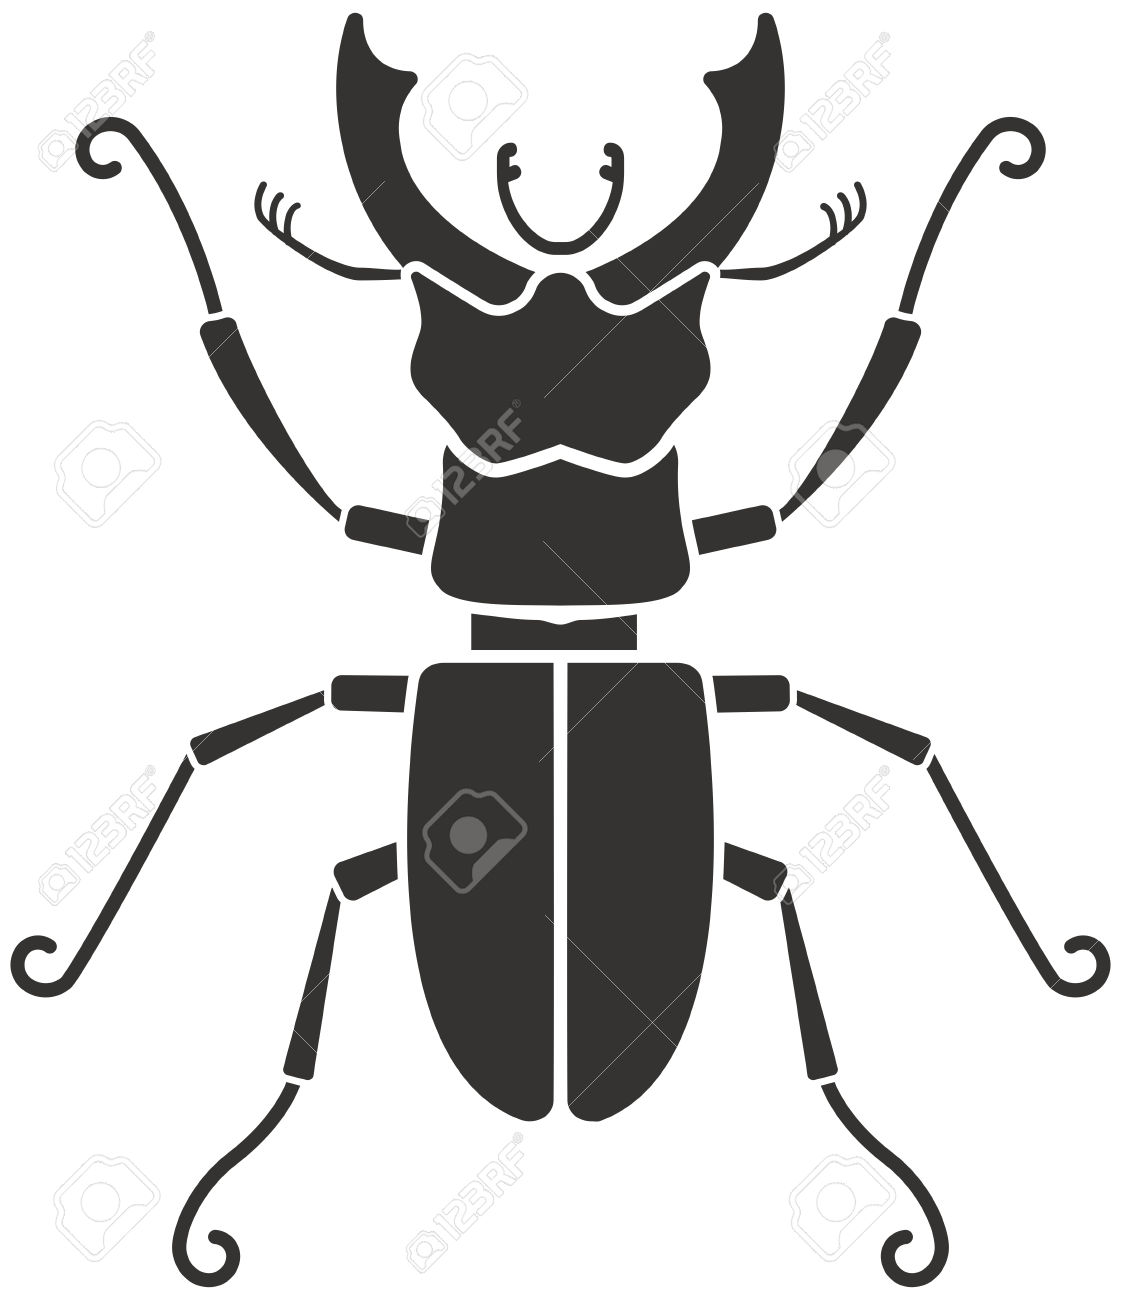 93 Lucanus Cliparts, Stock Vector And Royalty Free Lucanus.